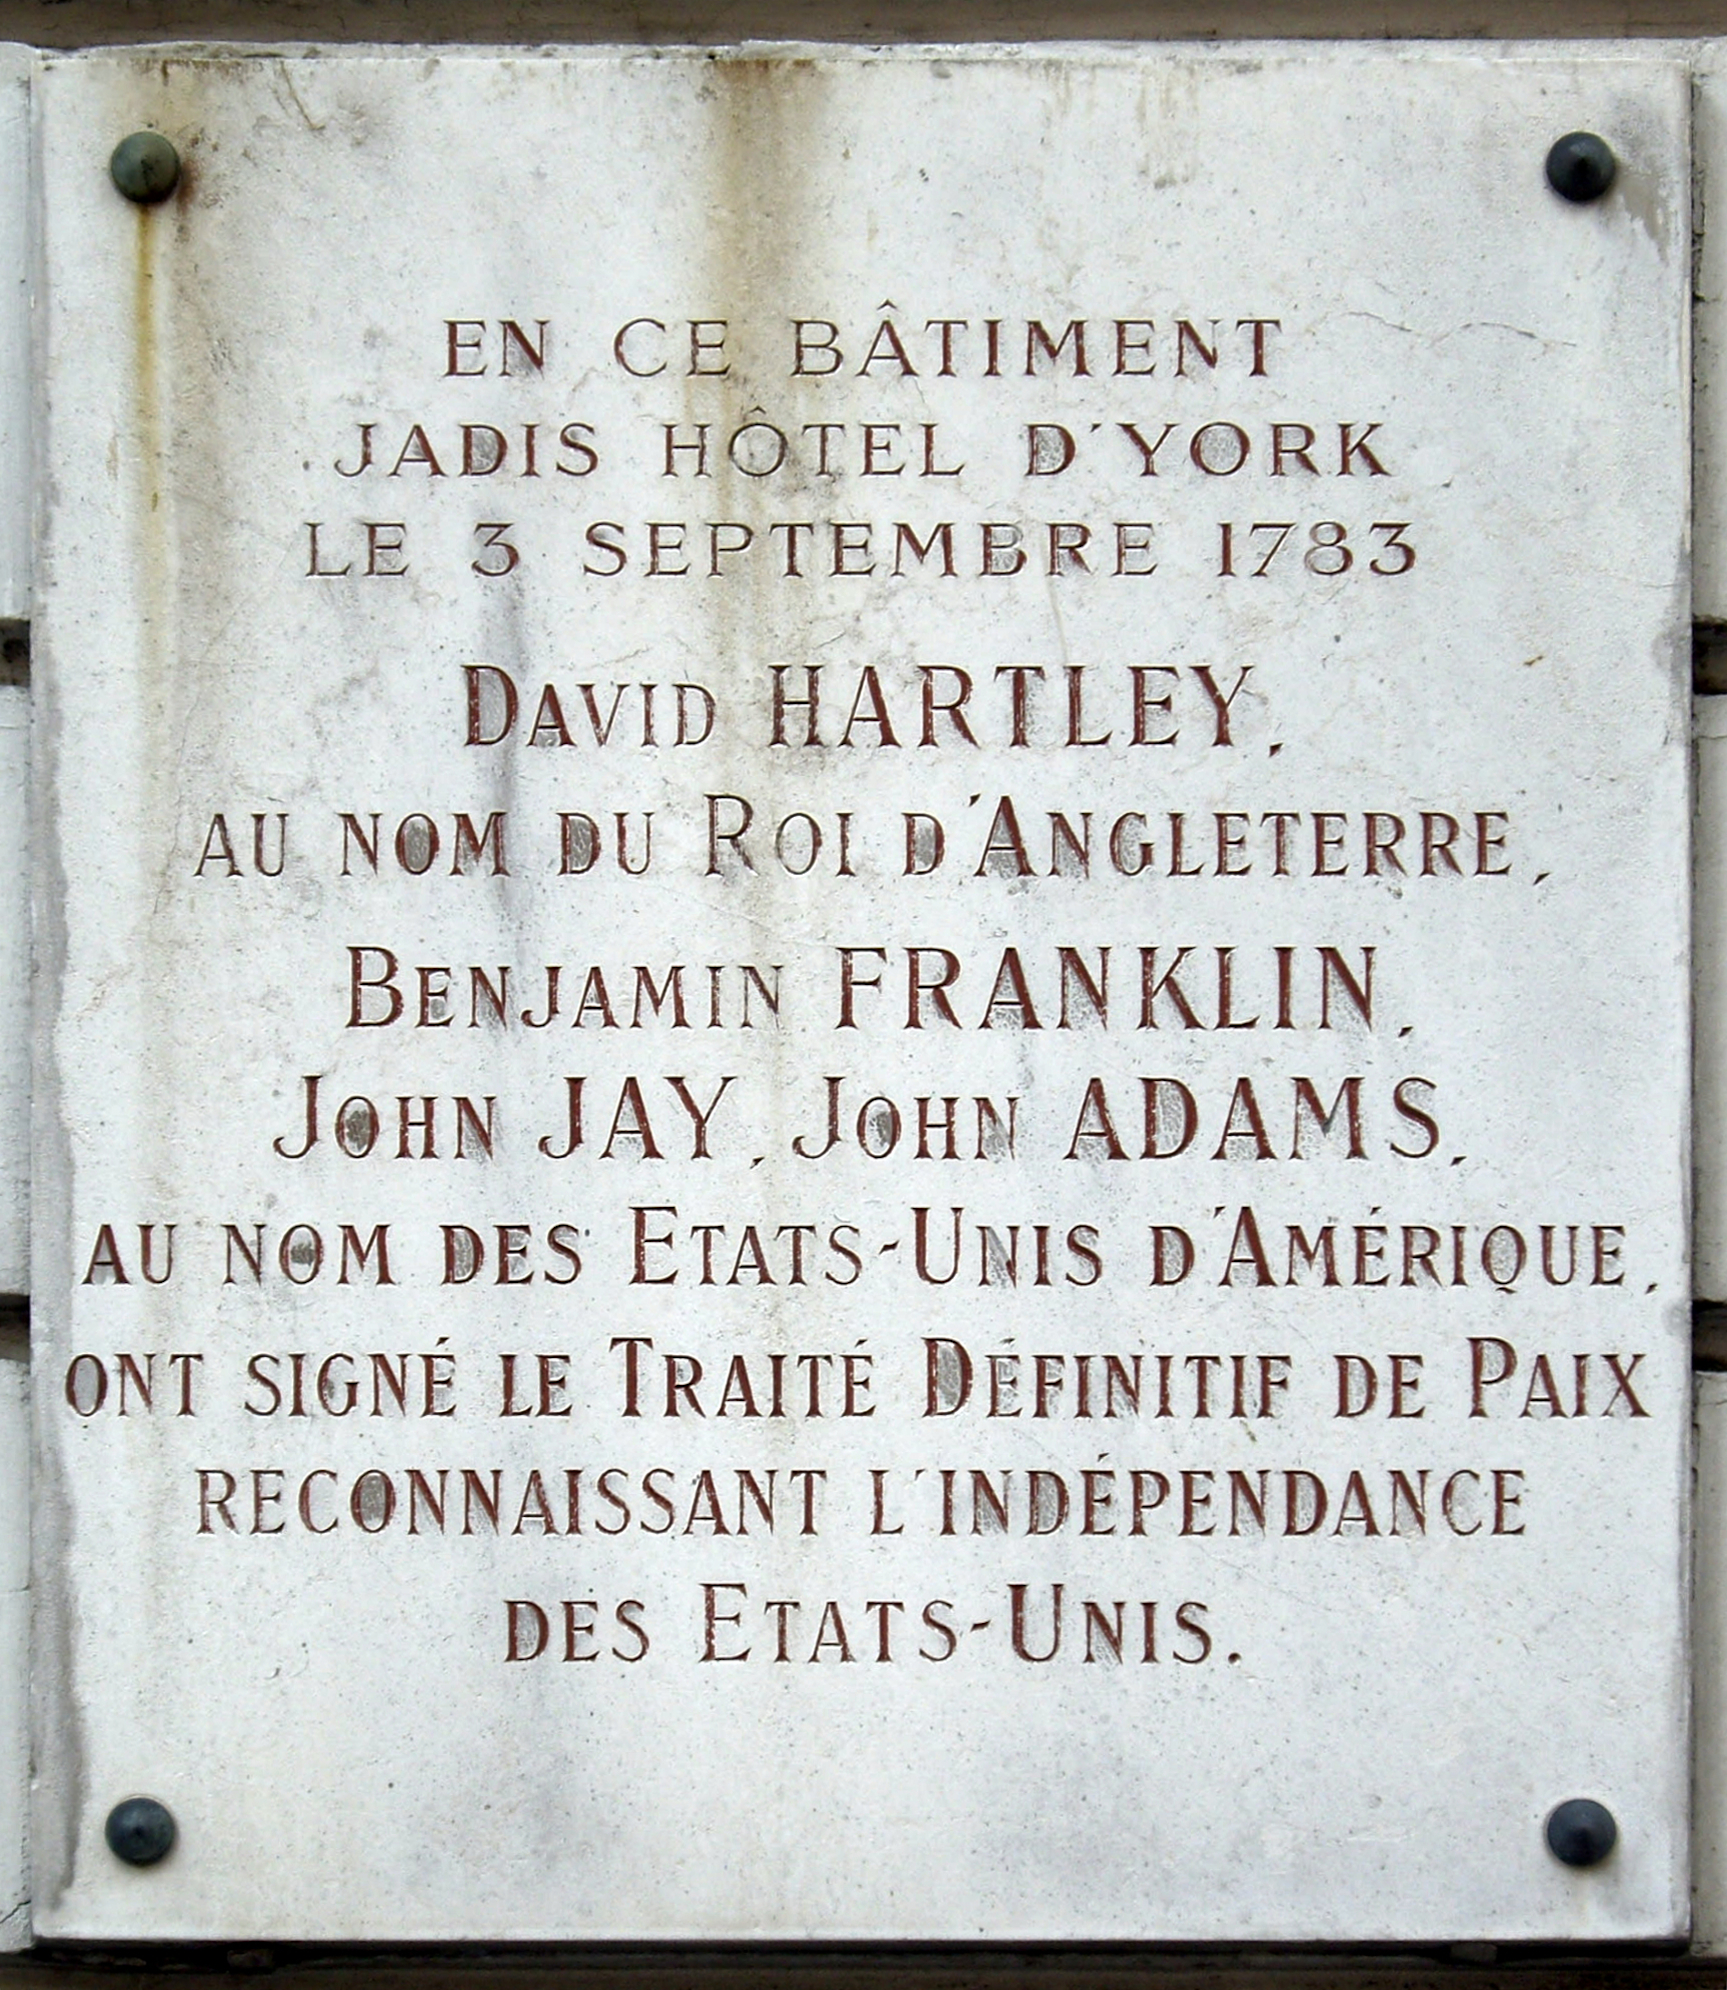 commemorative plaque of the Treaty of Paris